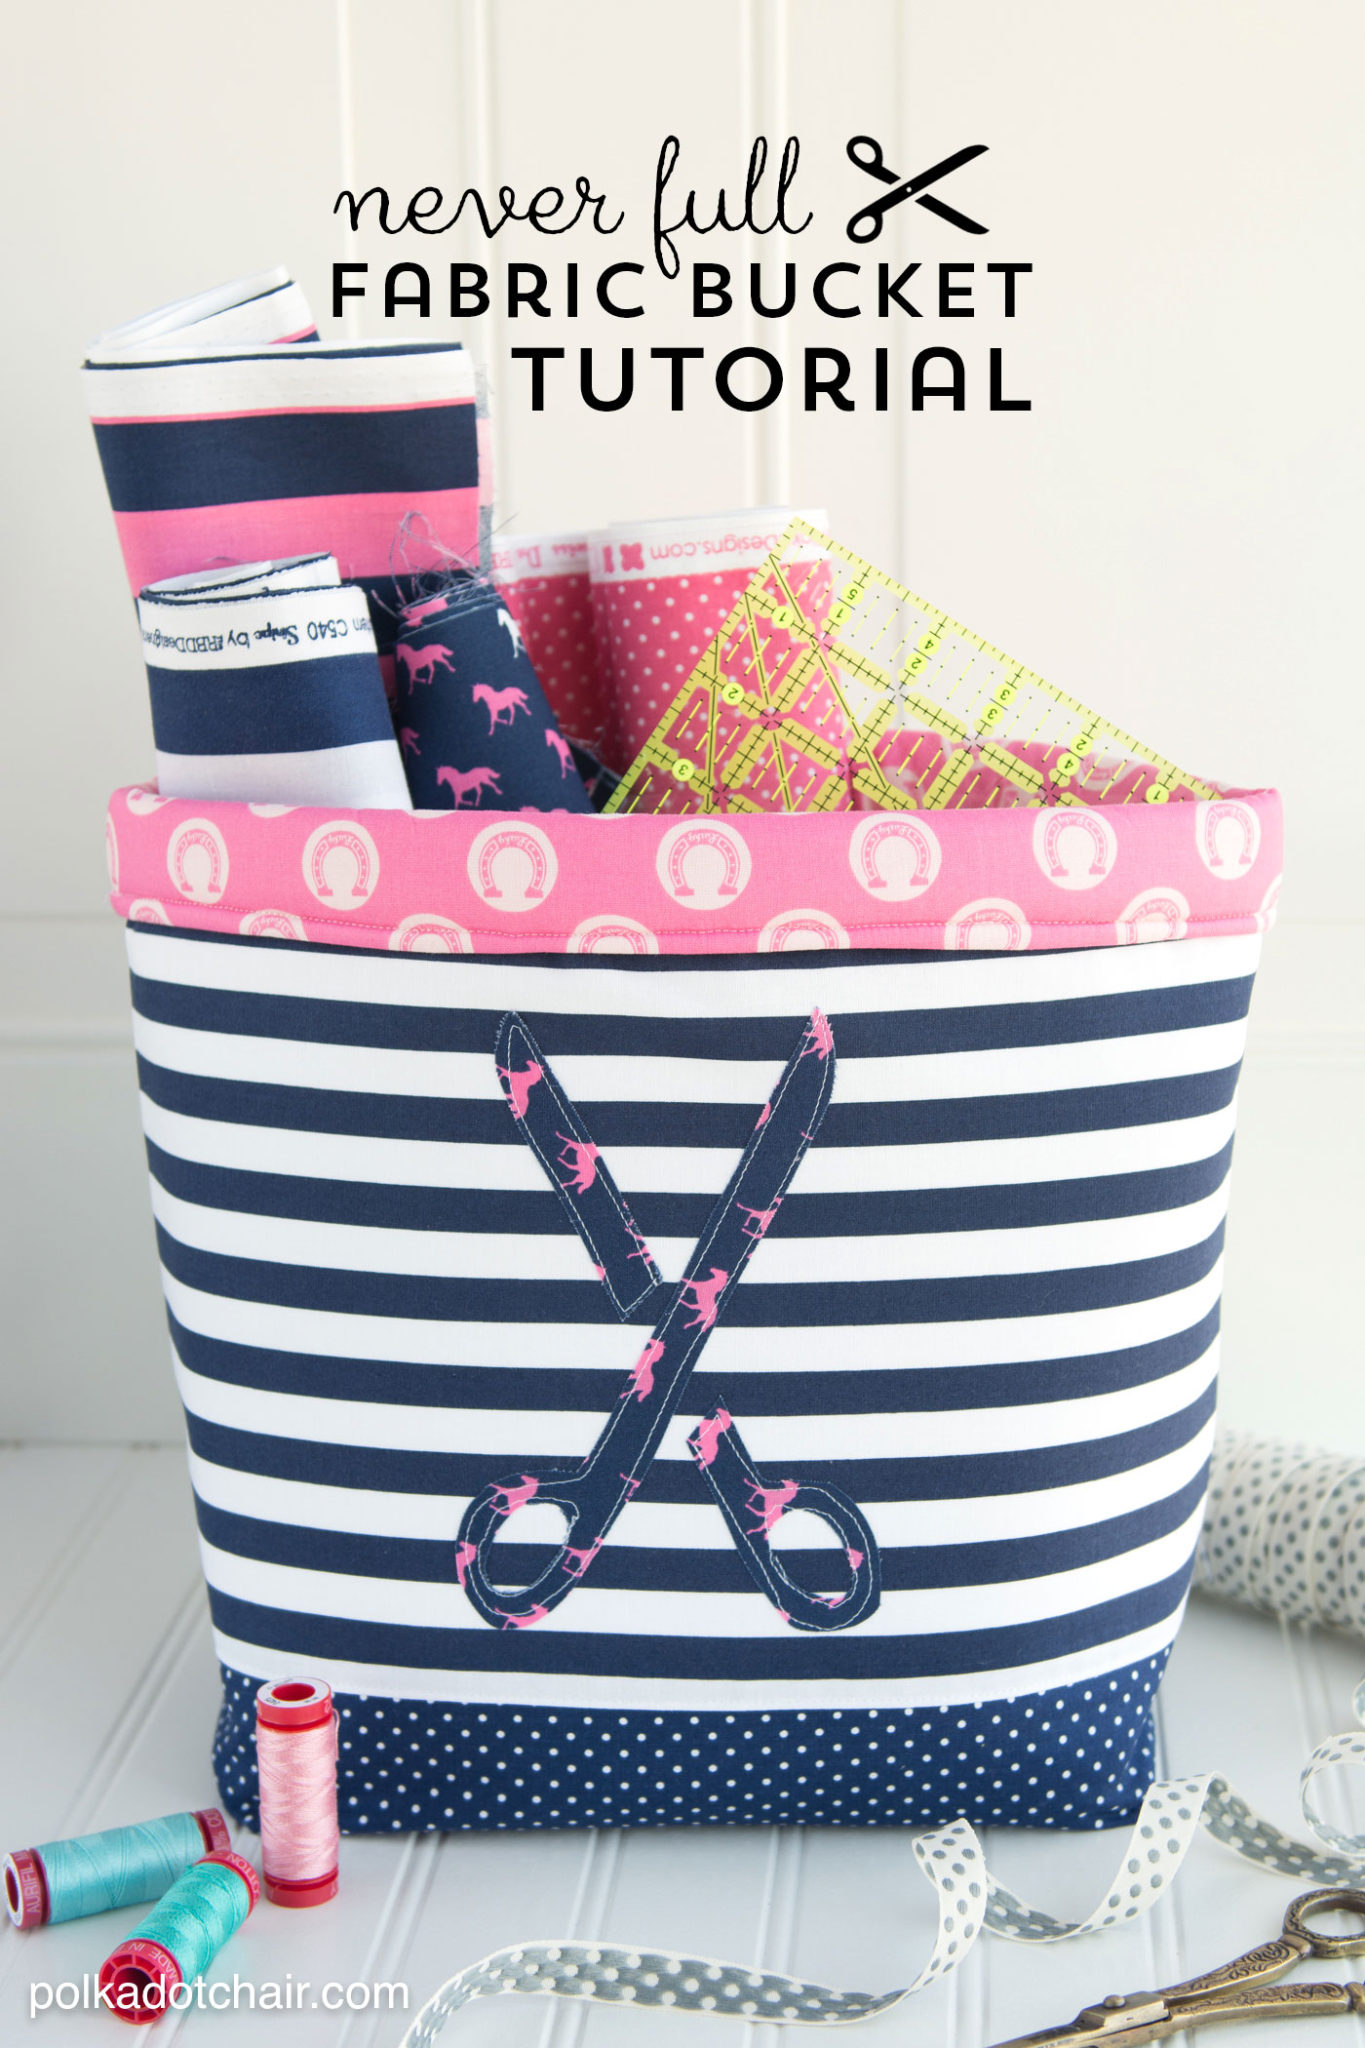 24-sewing-project-fabric-basket-tutorial